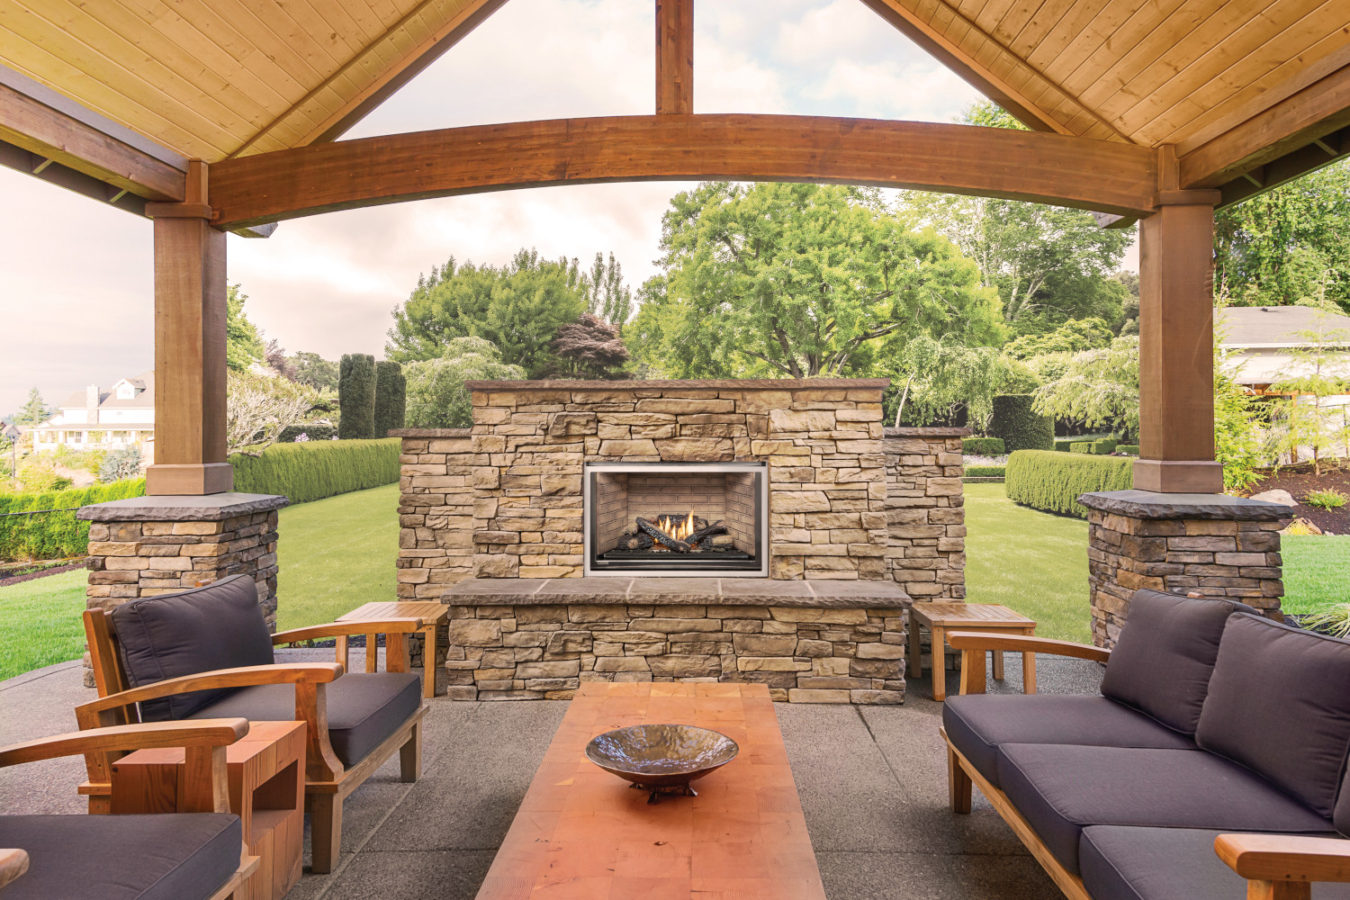 outdoor fireplace embers